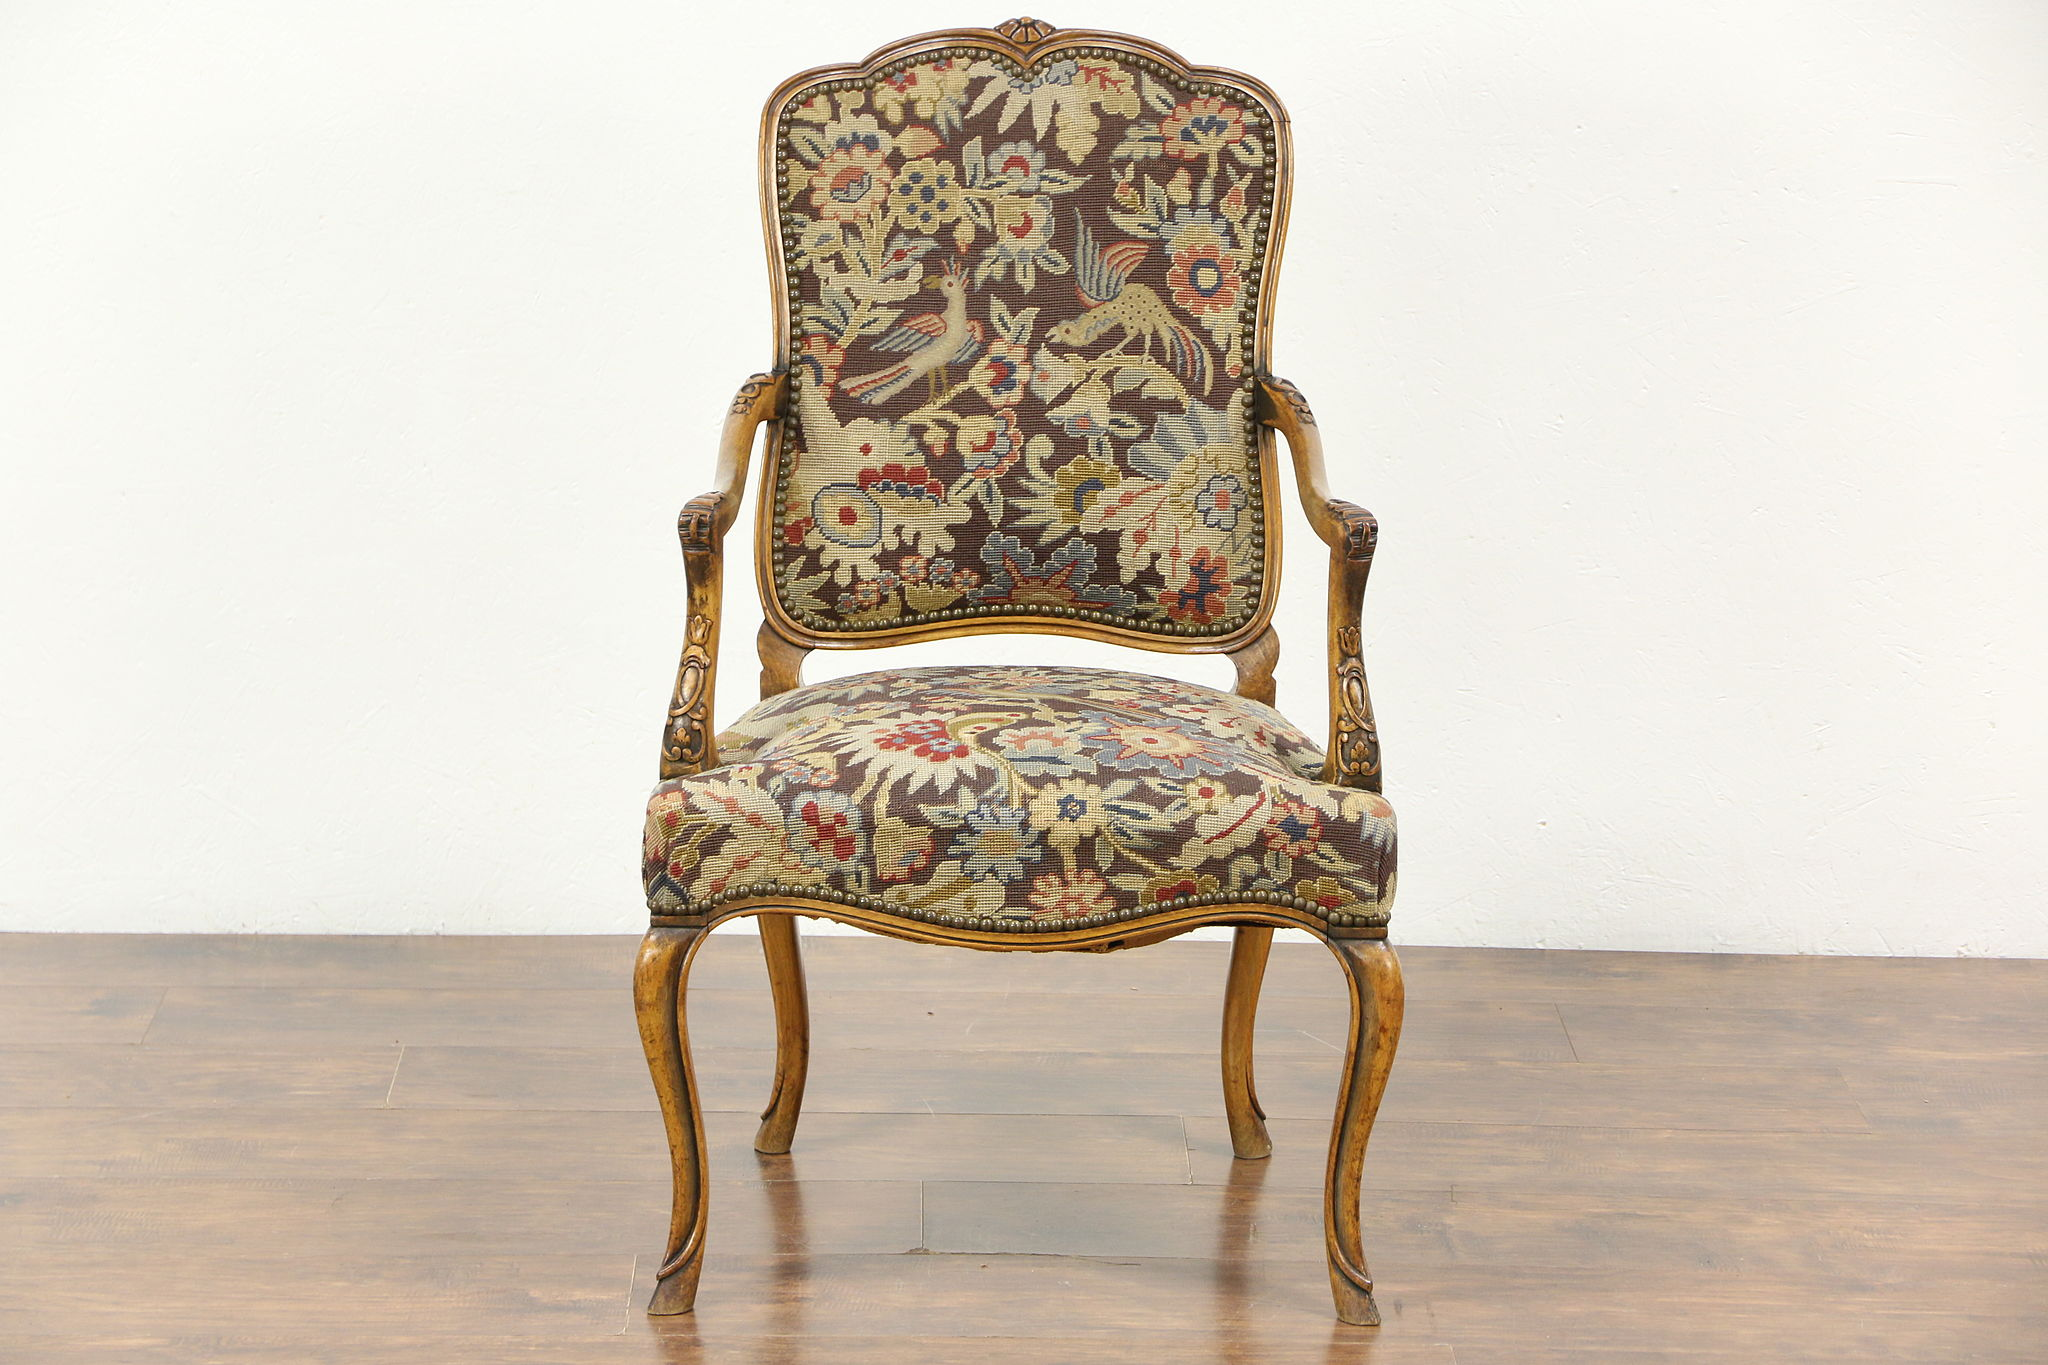 Carved Antique Scandinavian Chair, Needlepoint U0026 Petit Point Upholstery ...